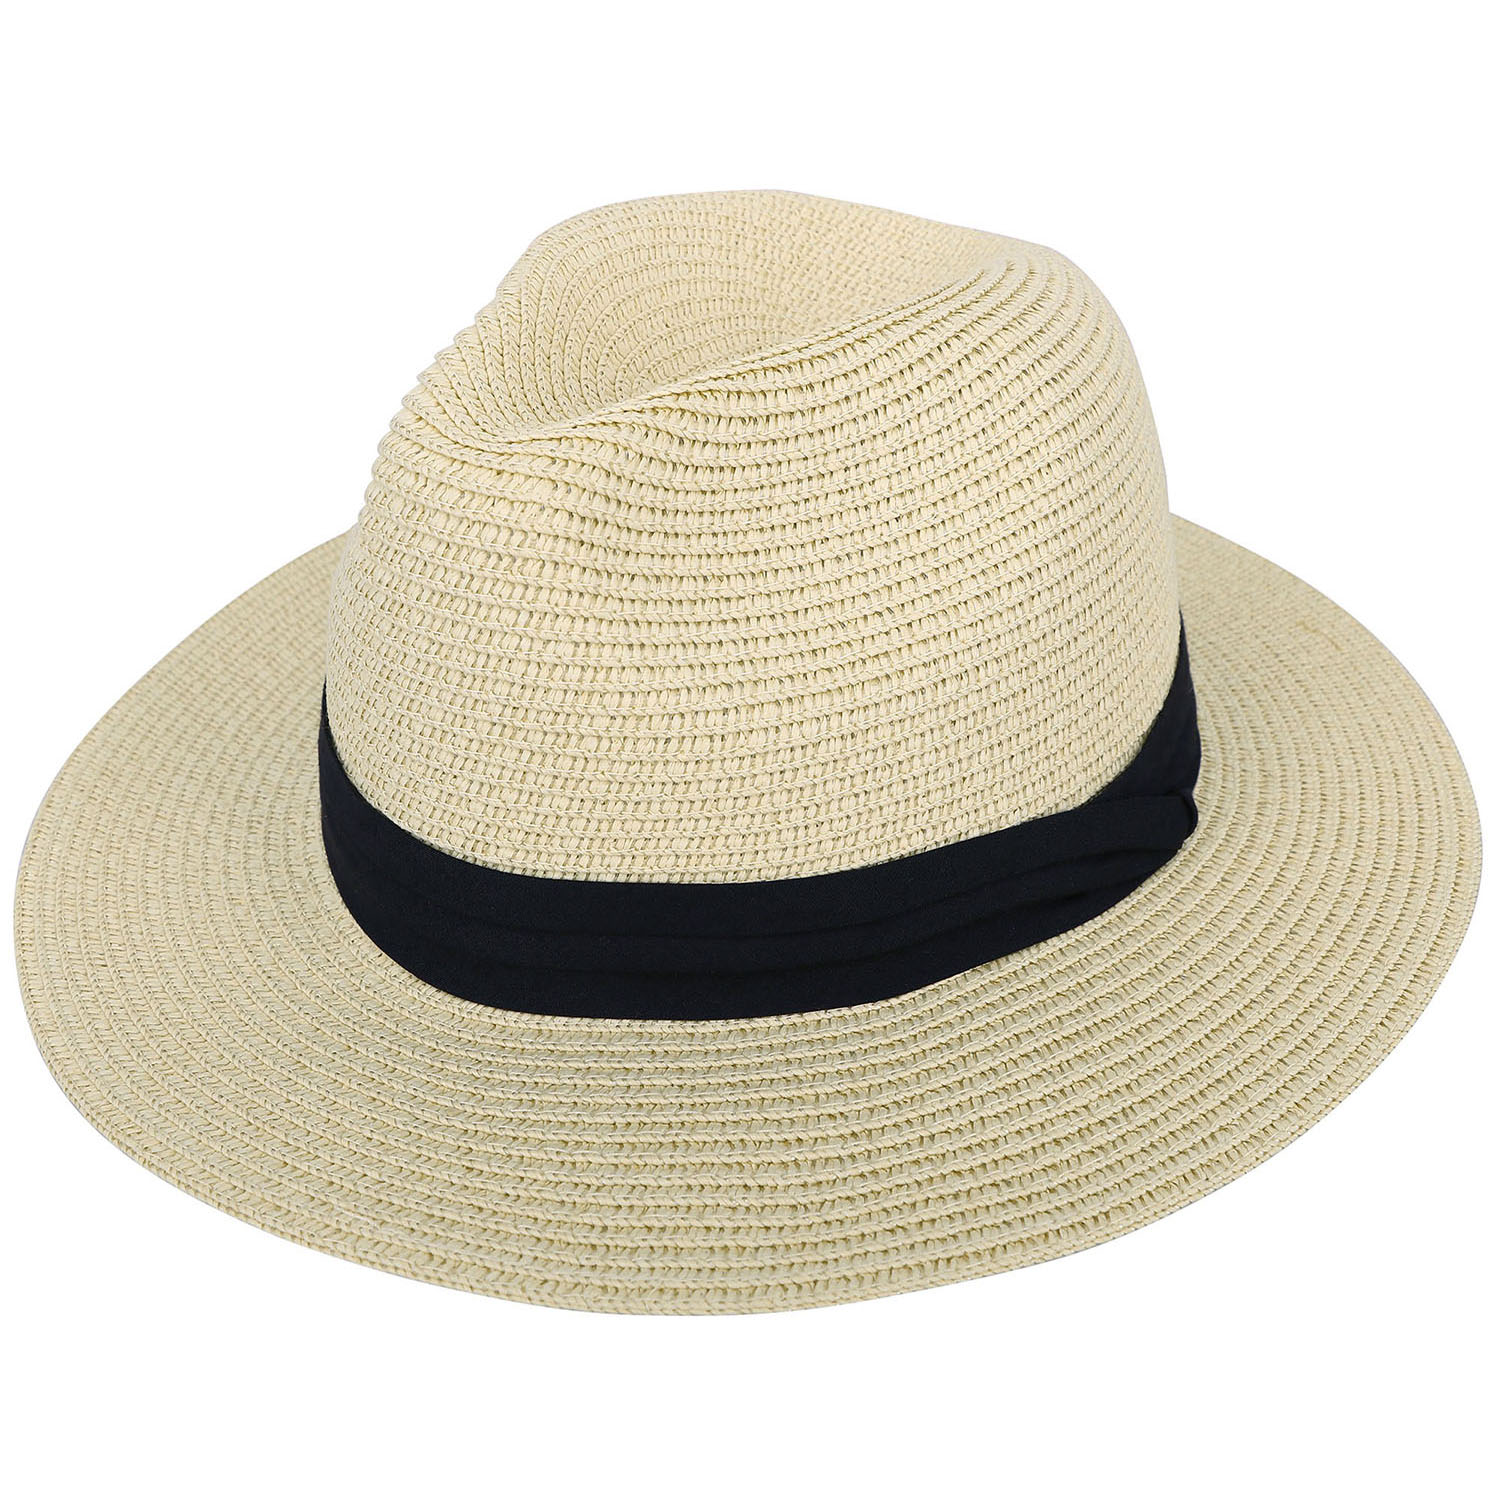 Straw Crushable Fedora Natural Cream Wide Brim Packable Summer Sun Hat 3 Sizes